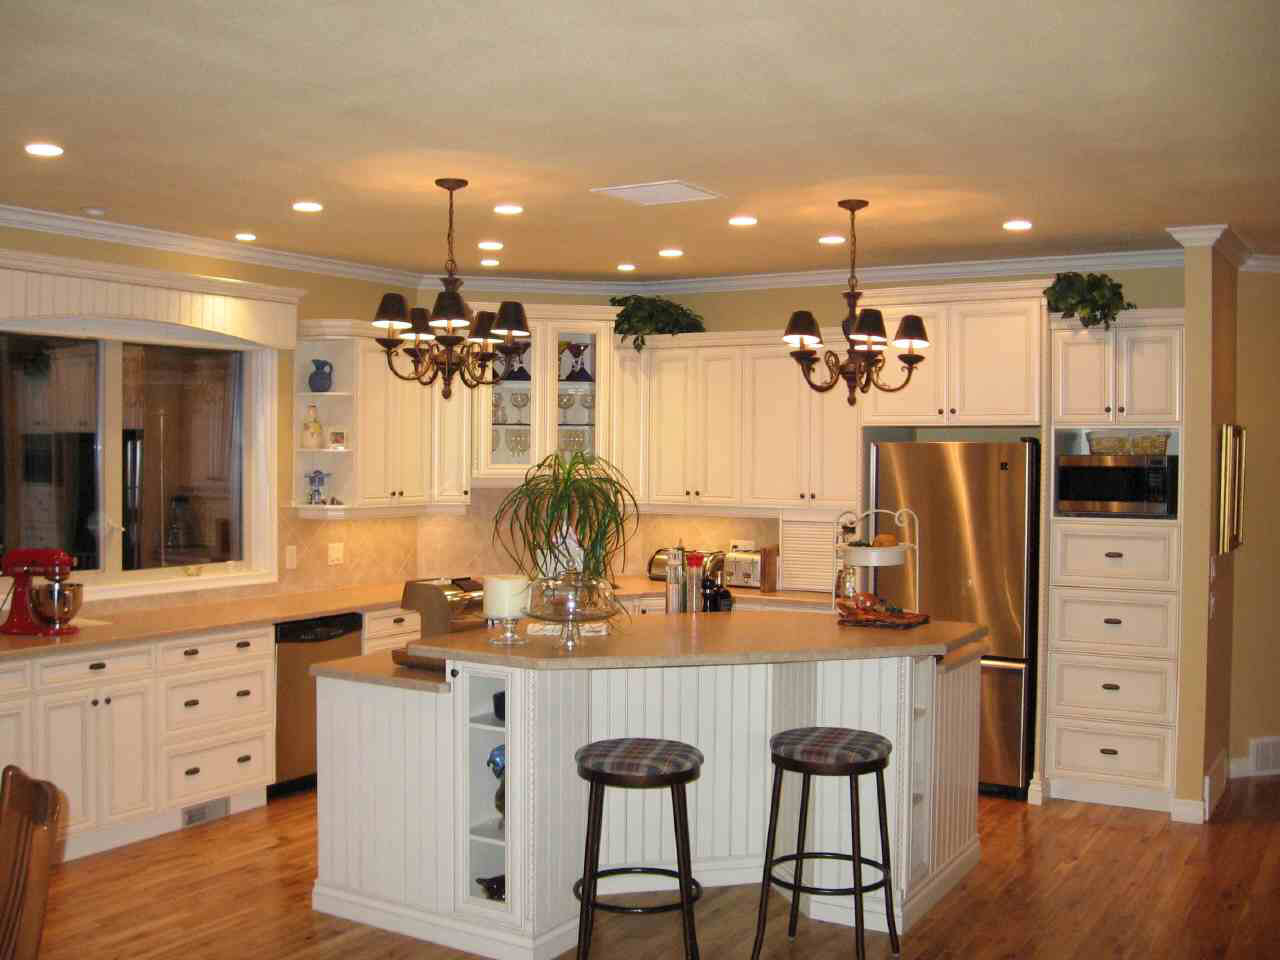 Peartreedesigns beautiful modern kitchen interiors for Kitchen room interior design ideas